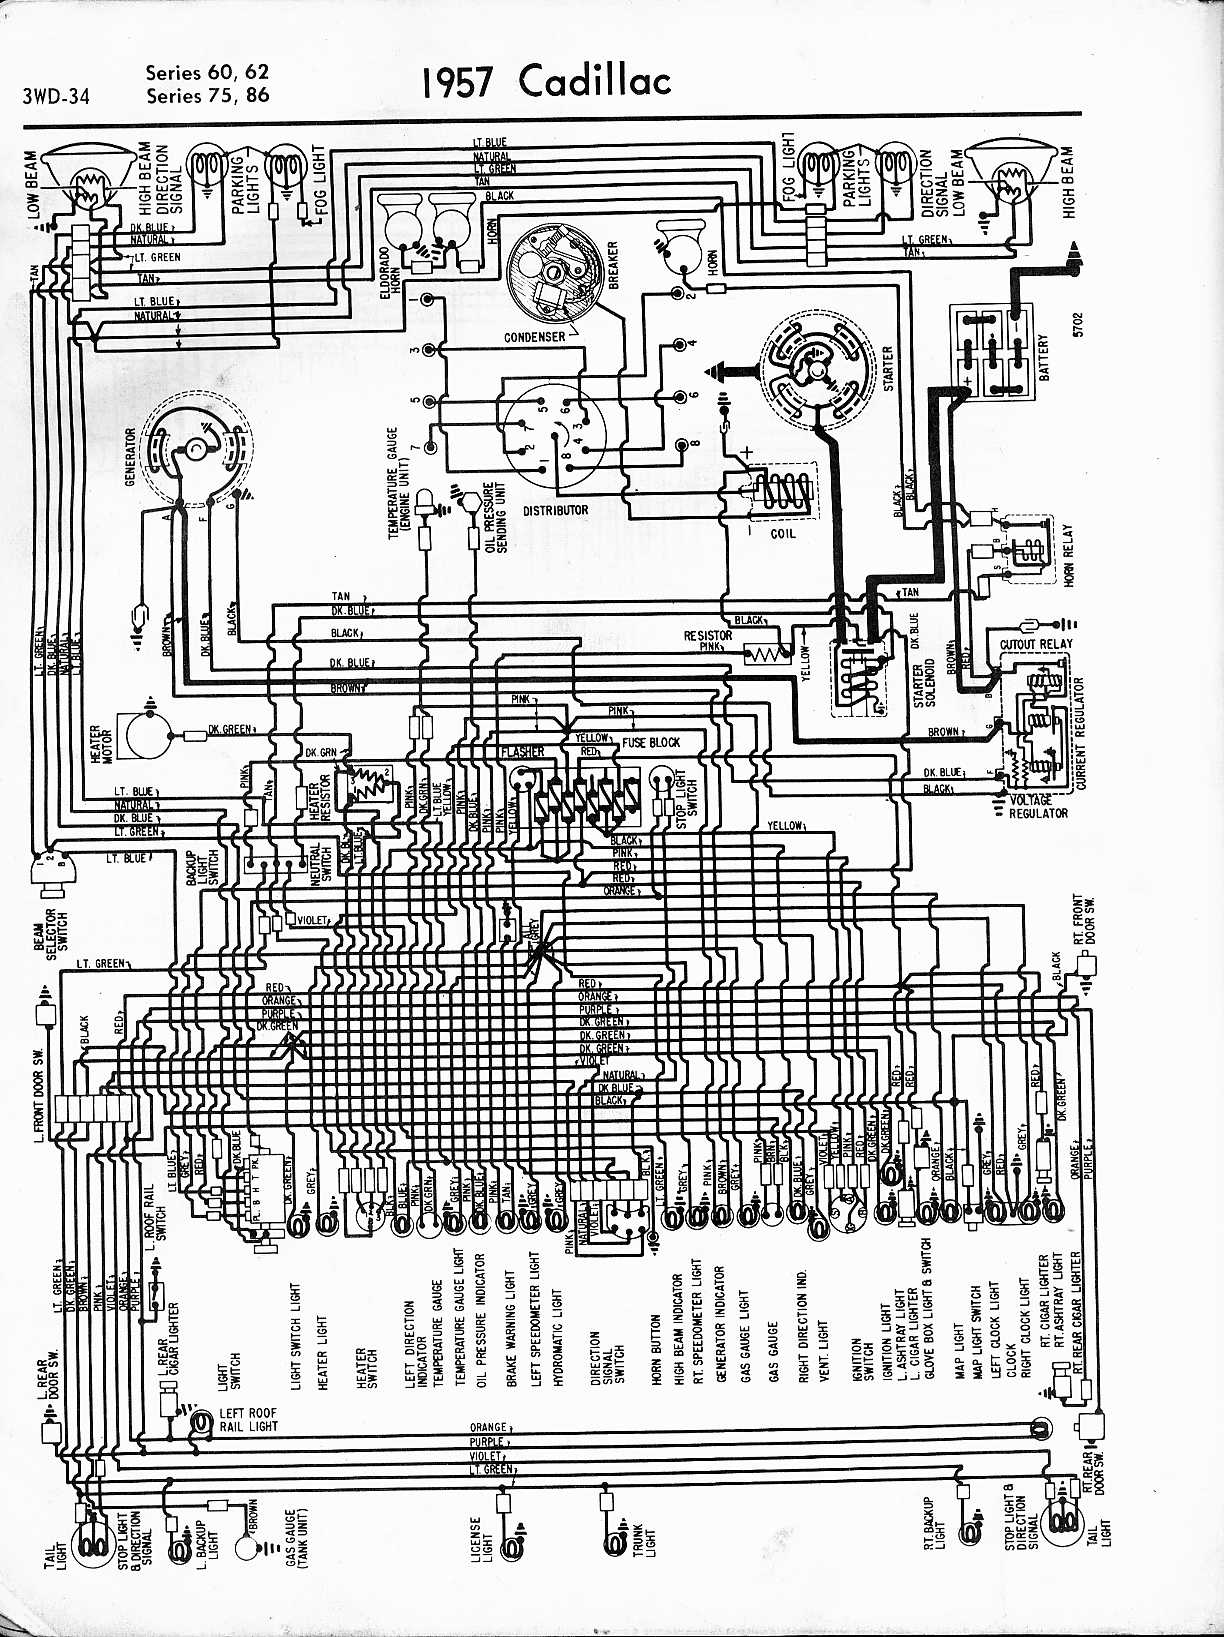 69 cadillac wiring diagram all wiring diagram cadillac wiring diagrams 1957 1965 69 road runner wiring diagram 69 cadillac wiring diagram